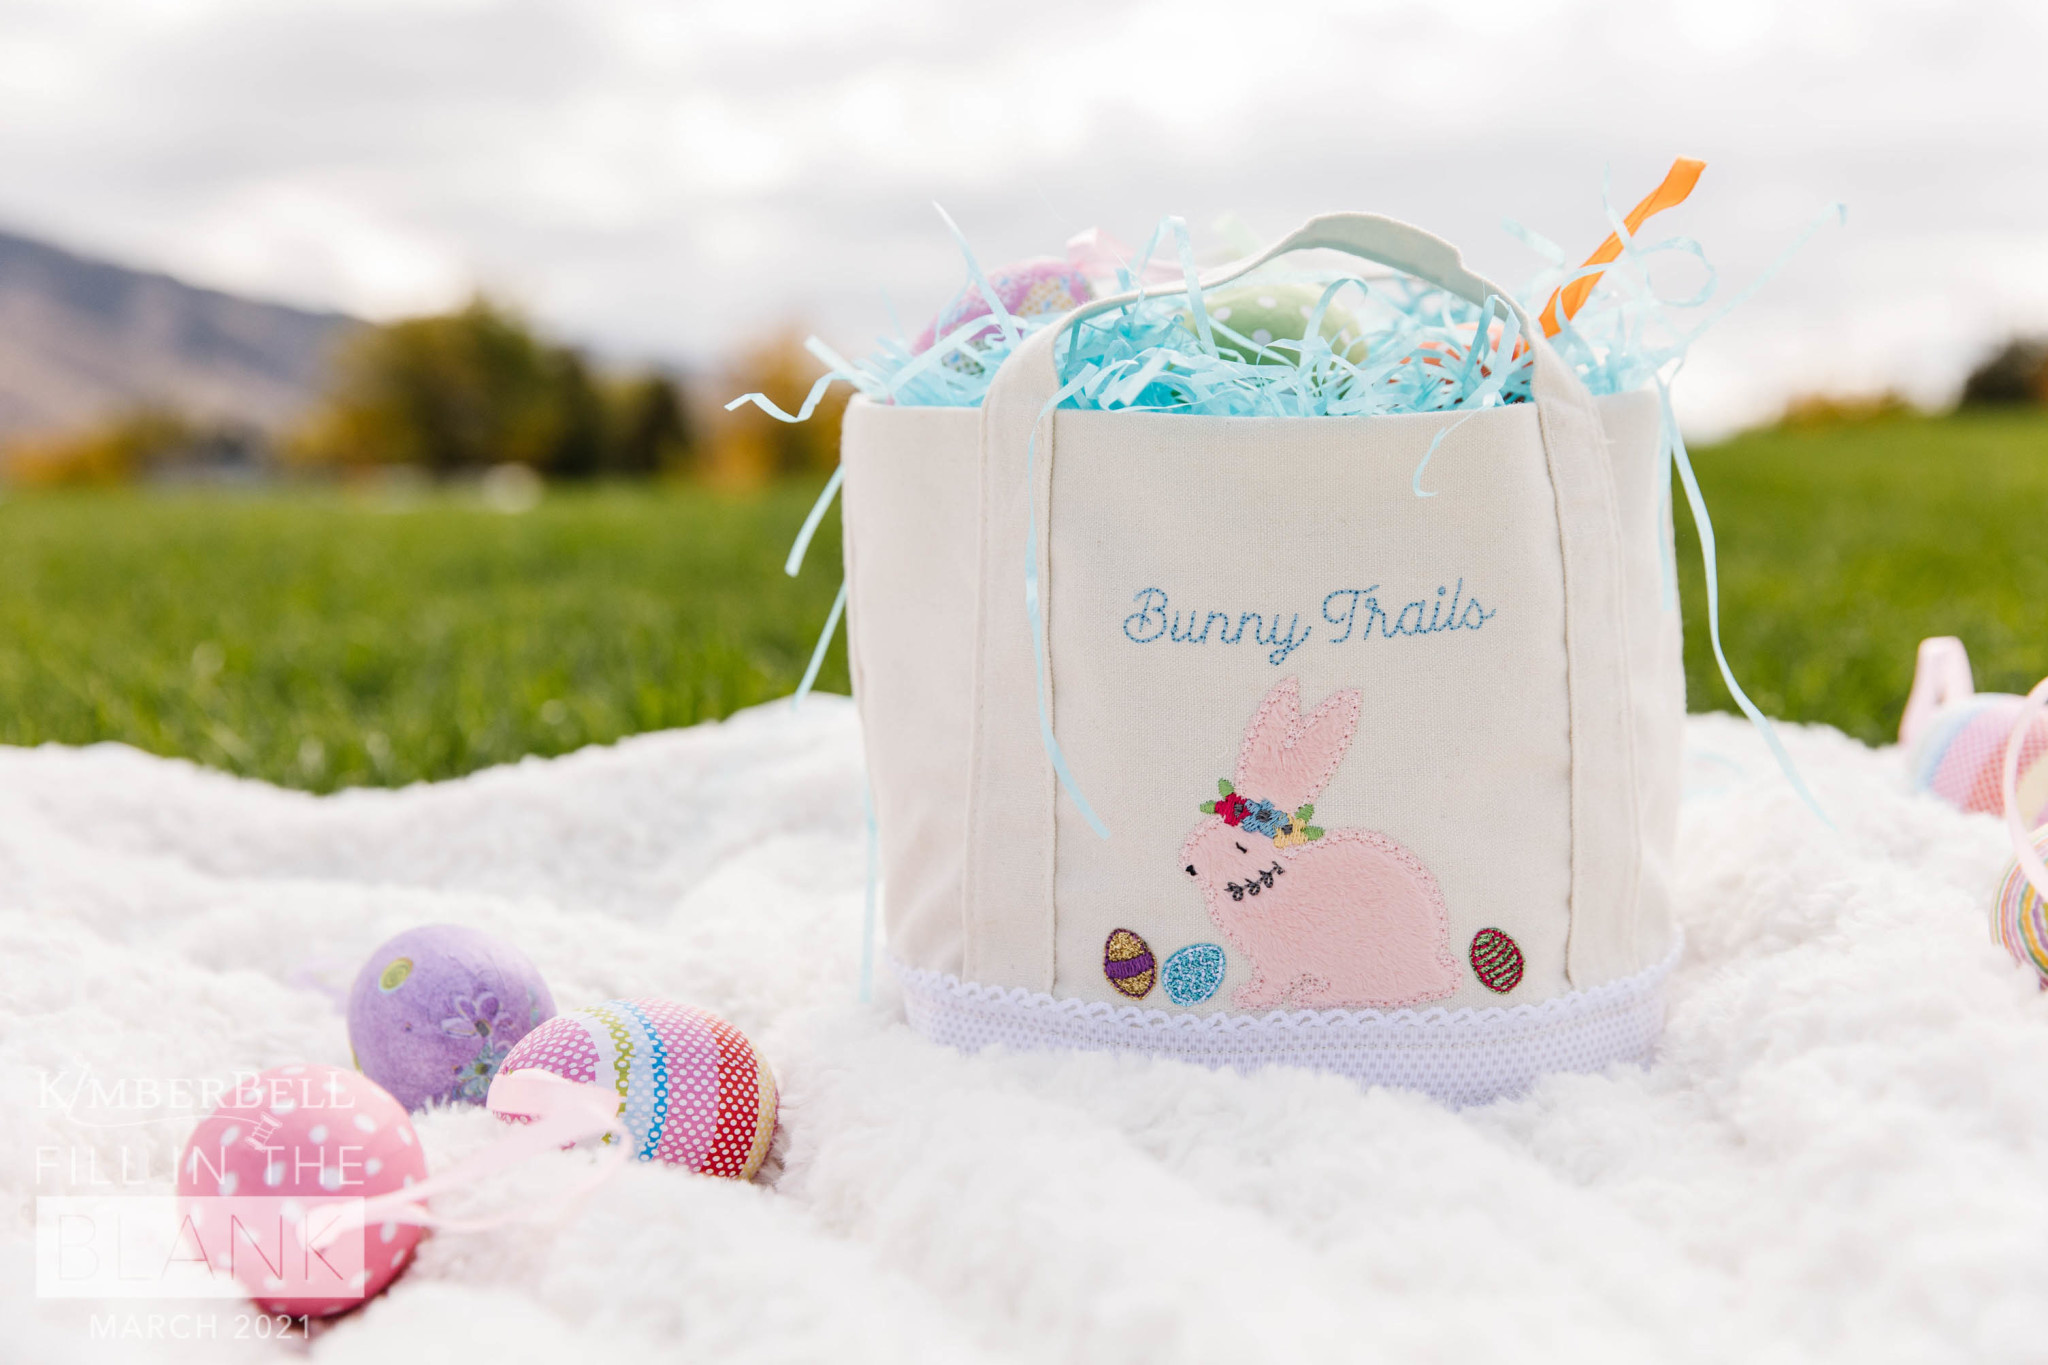 KIMBERBELL DESIGNS Fill In The Blank Bunny Busket Kit